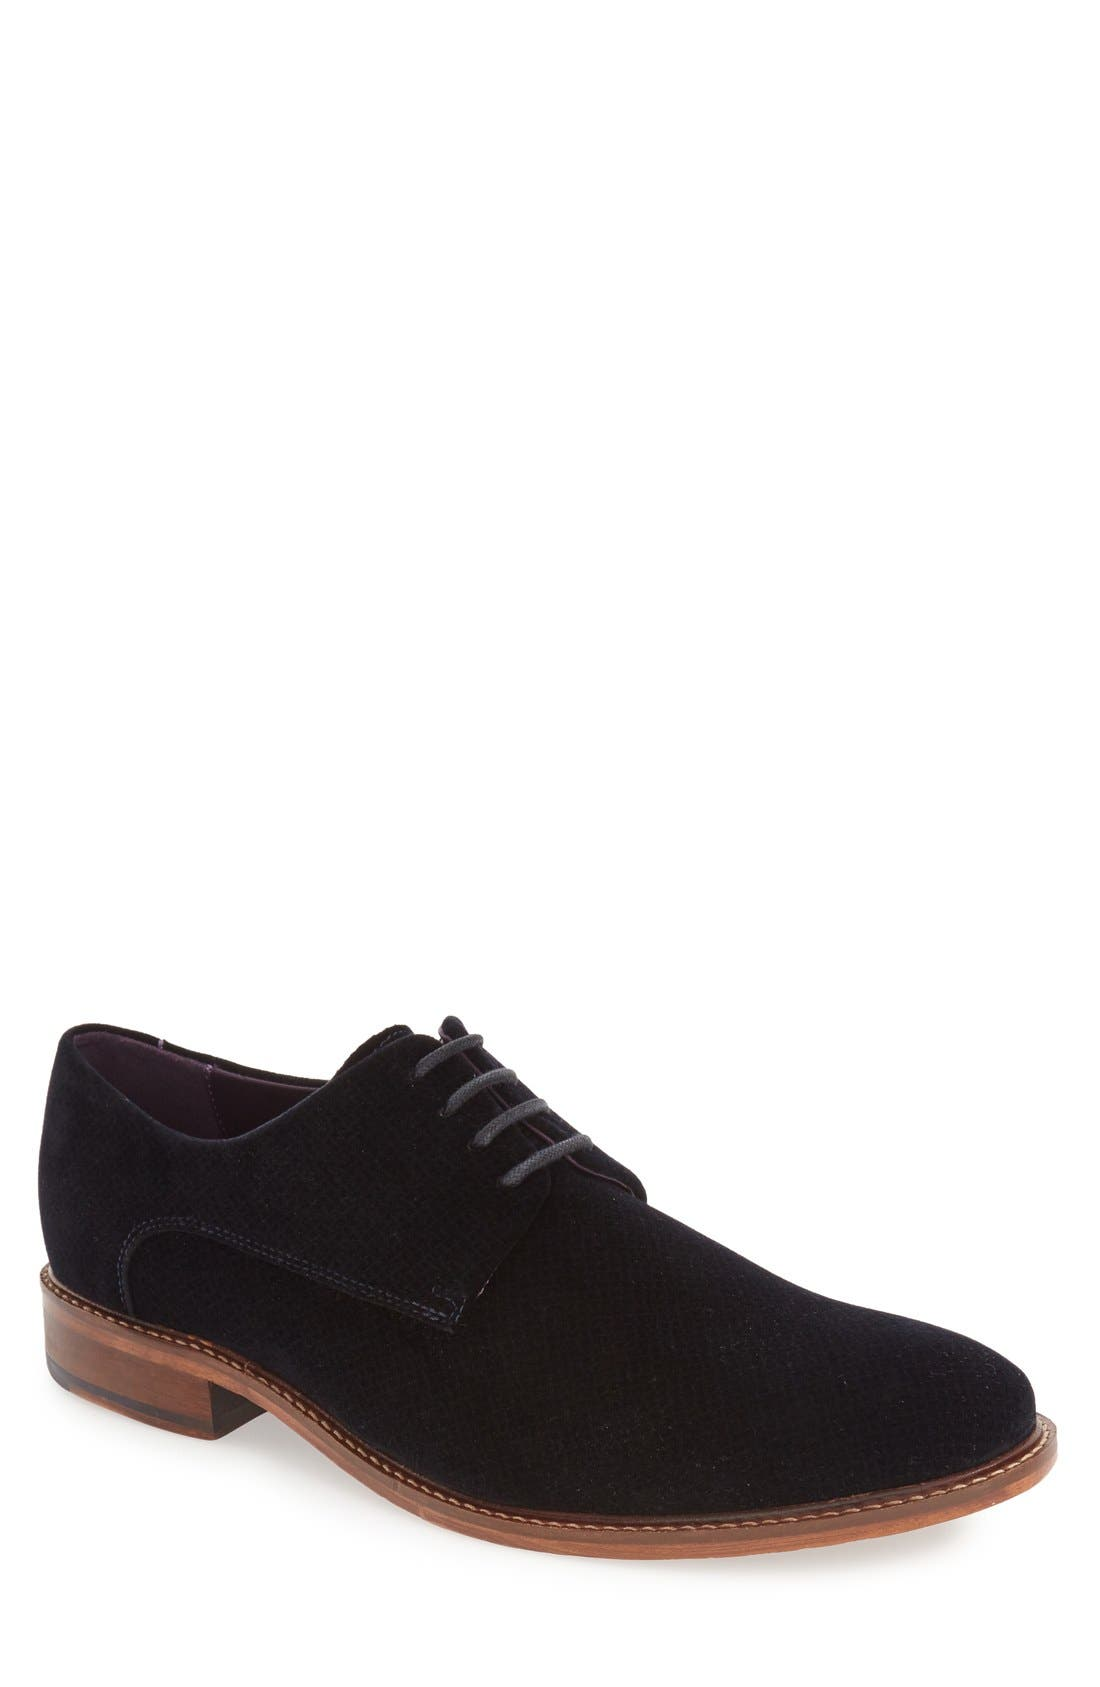 'Nierro' Plain Toe Derby,                             Main thumbnail 1, color,                             Dark Blue